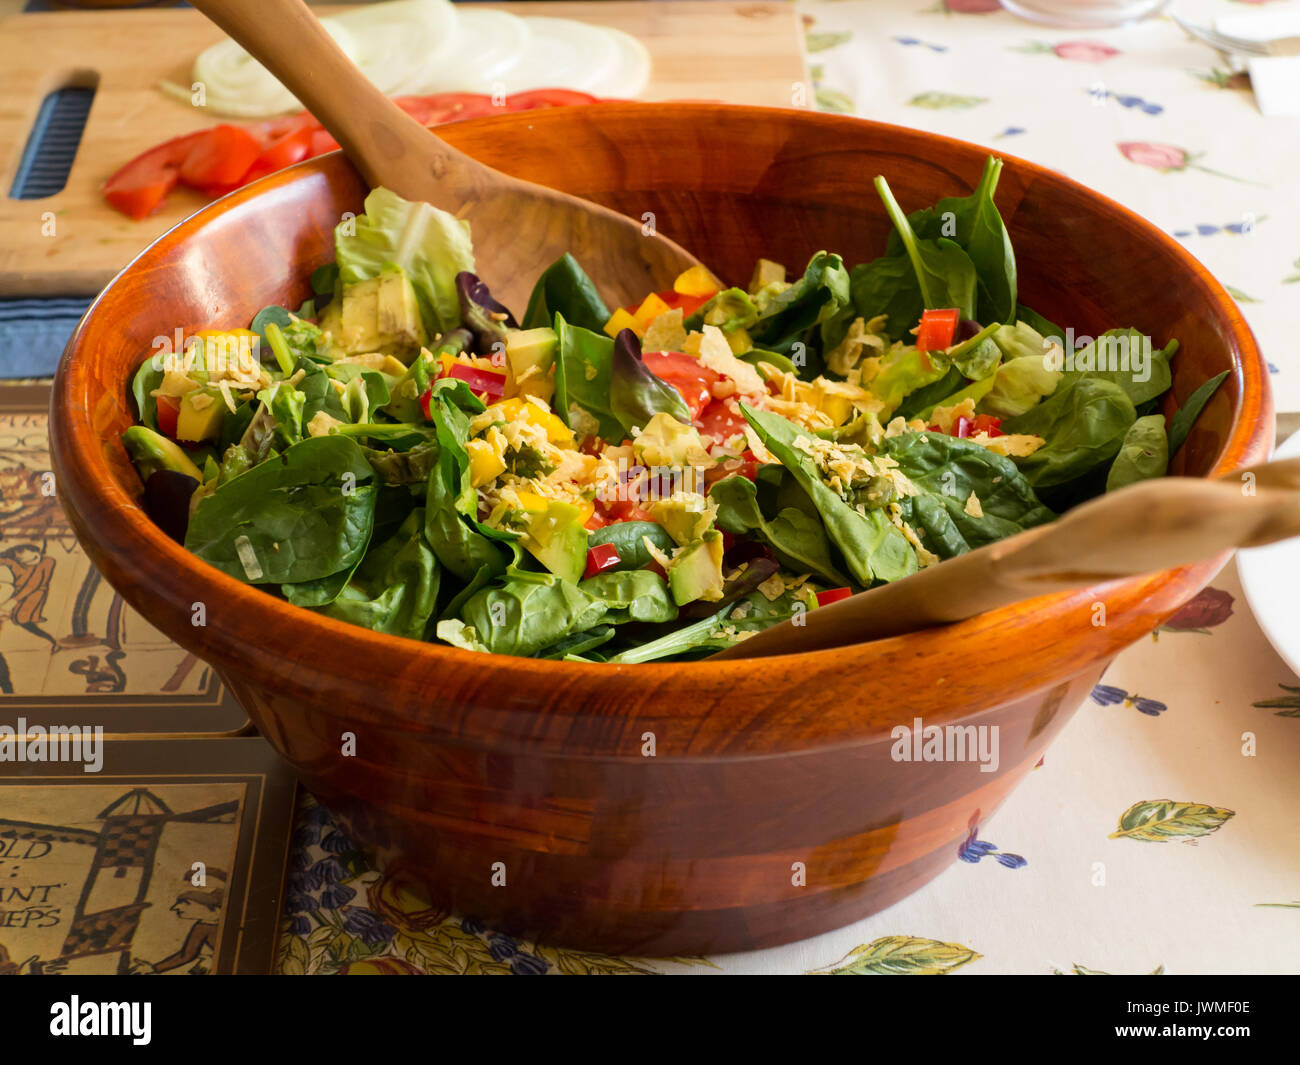 A wooden bowl with spinach mixed greens salad - Stock Image